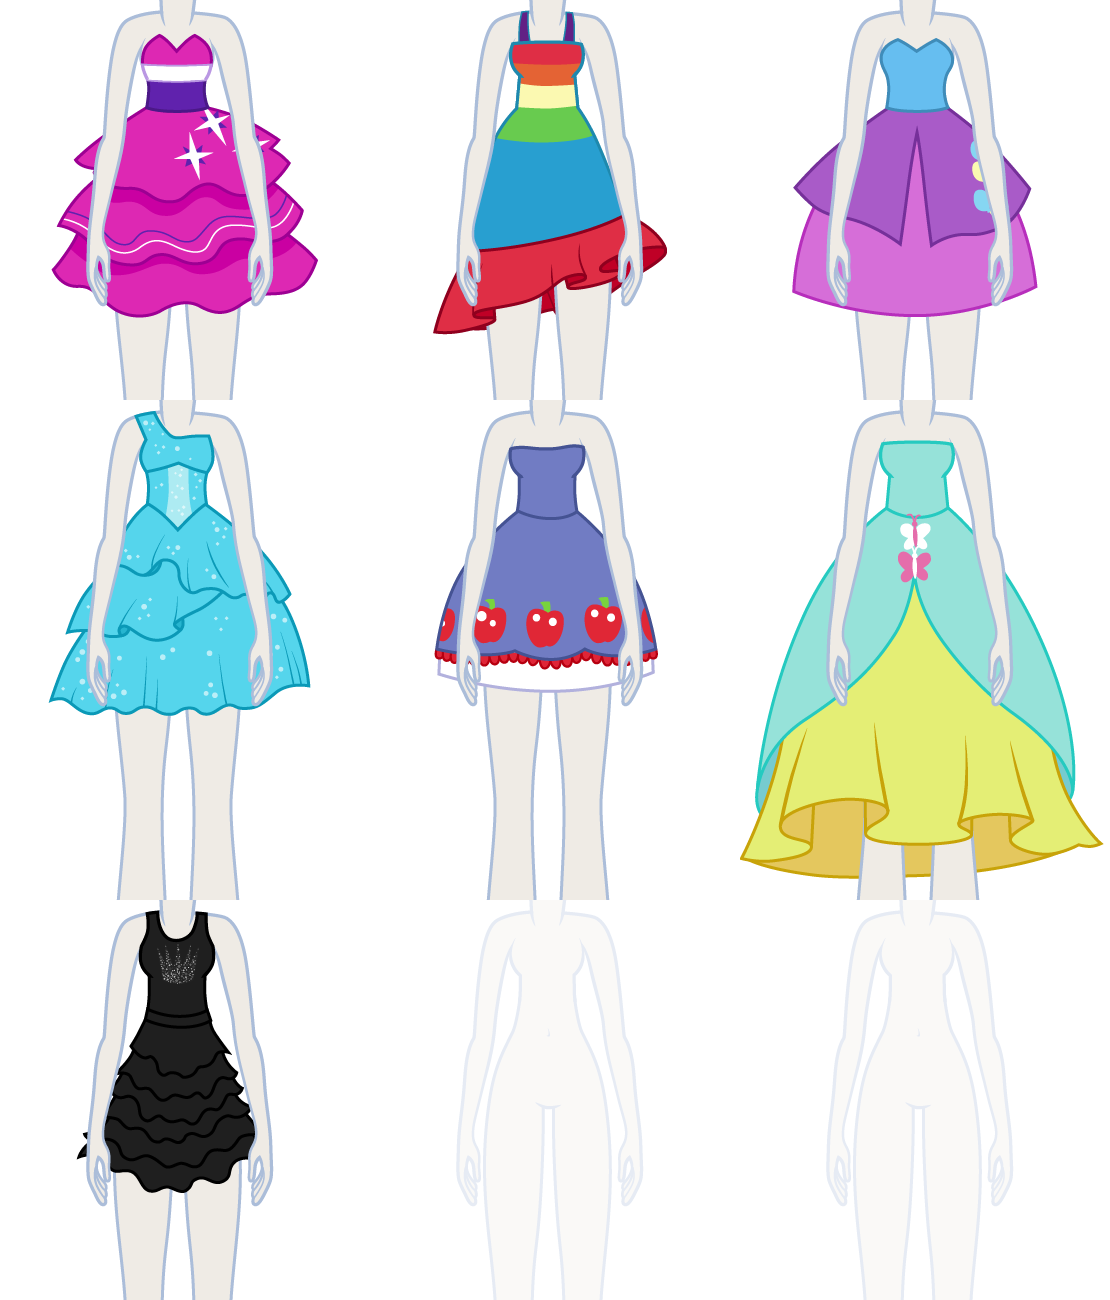 Eqg dress up preview dresses by liggliluff on deviantart eqg dress up preview dresses by liggliluff sciox Image collections